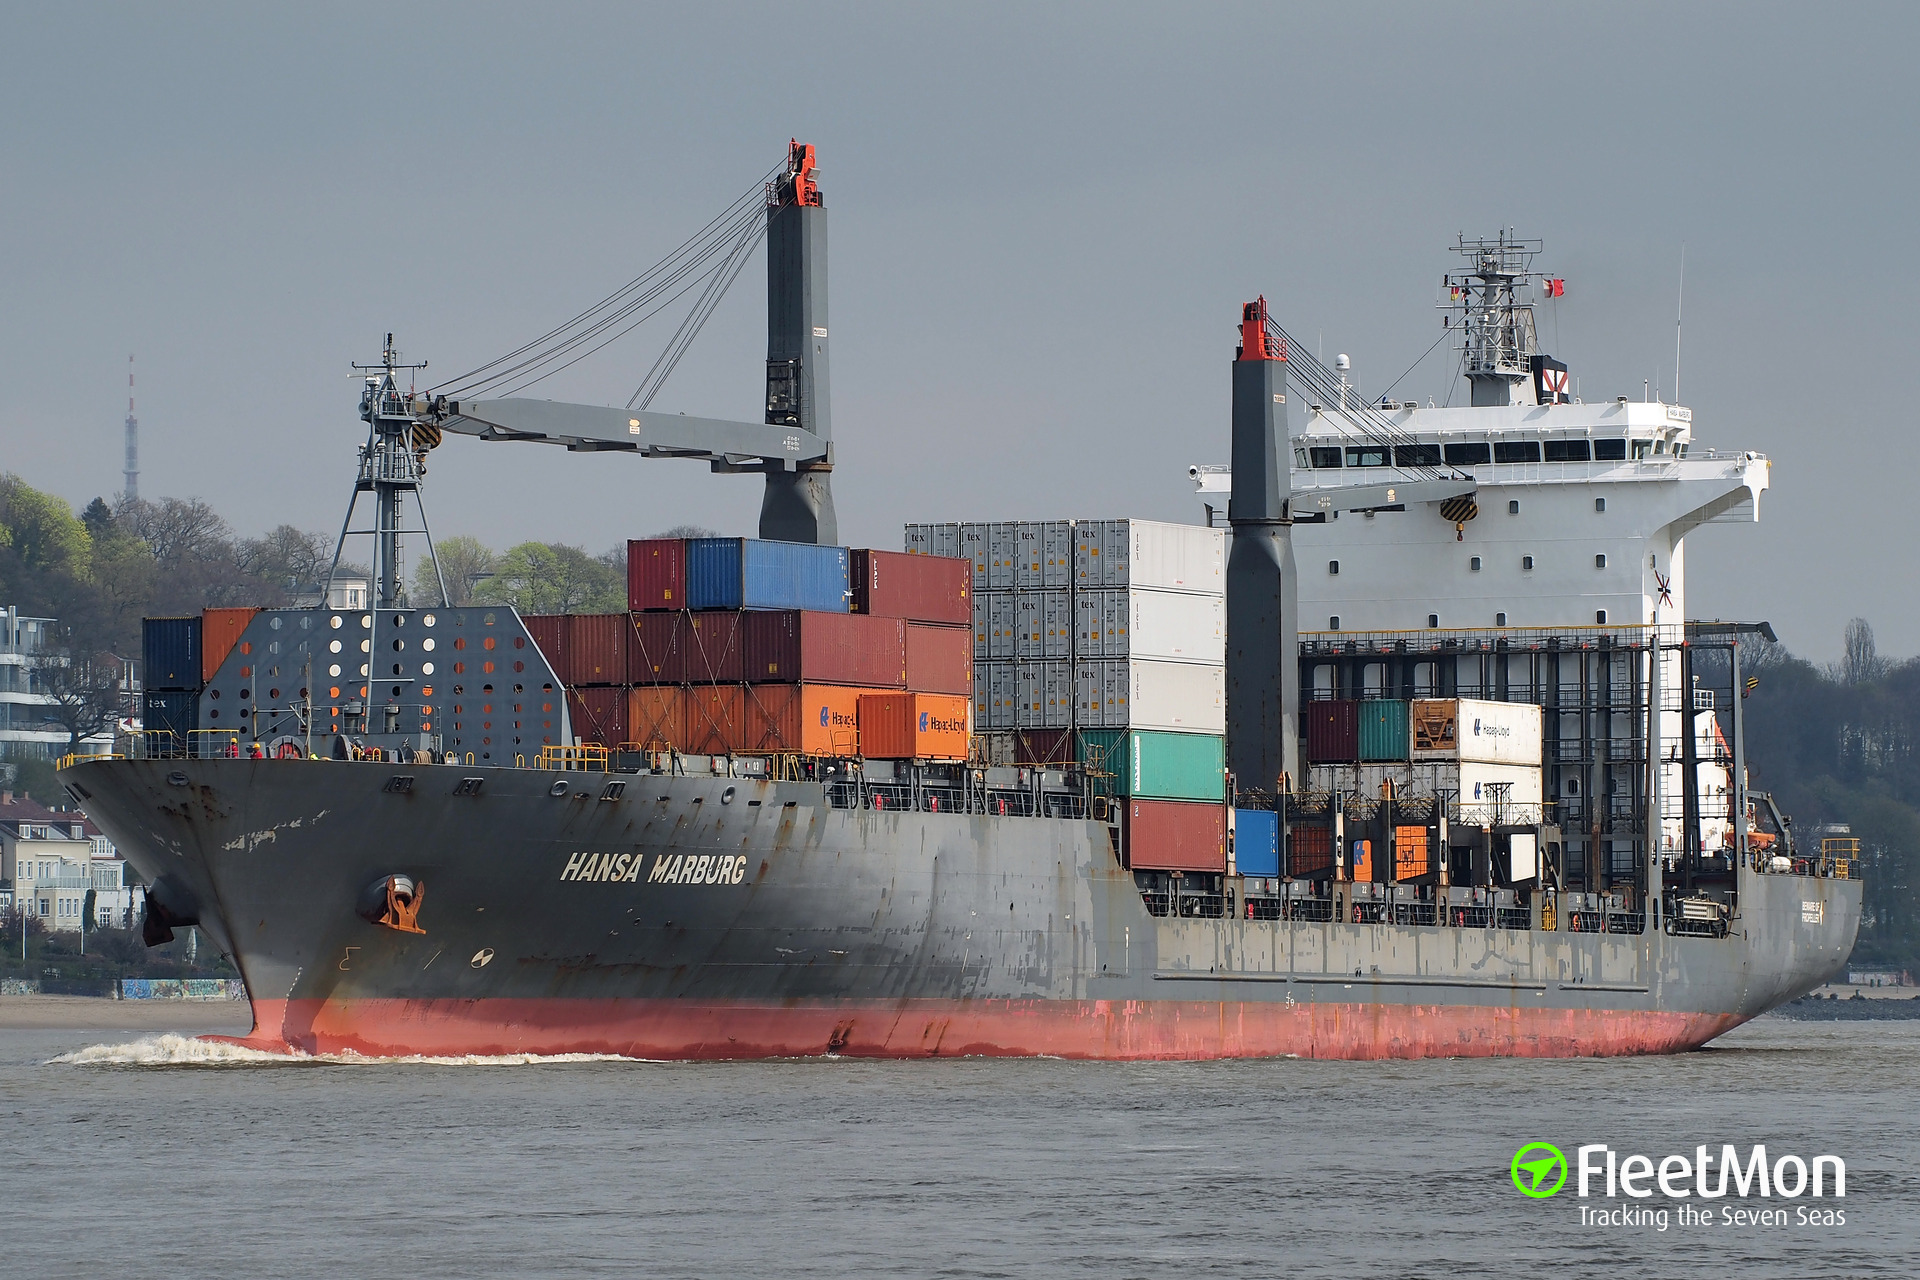 German boxship Hansa Marburg attacked by pirates, 4 crew hijacked, Nigeria